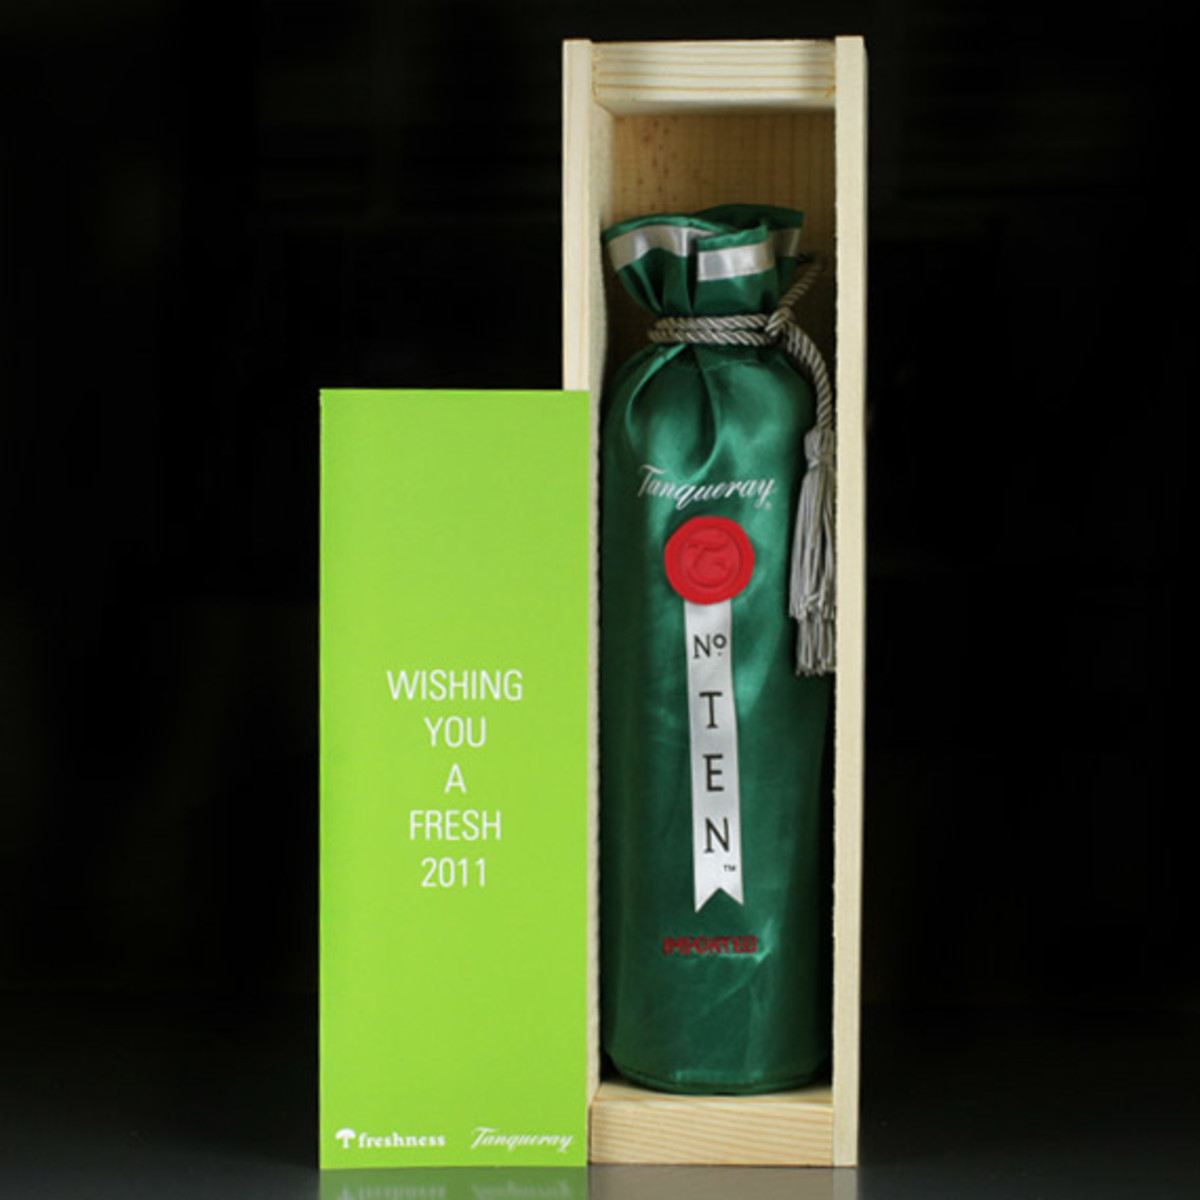 freshness-tanqueray-01